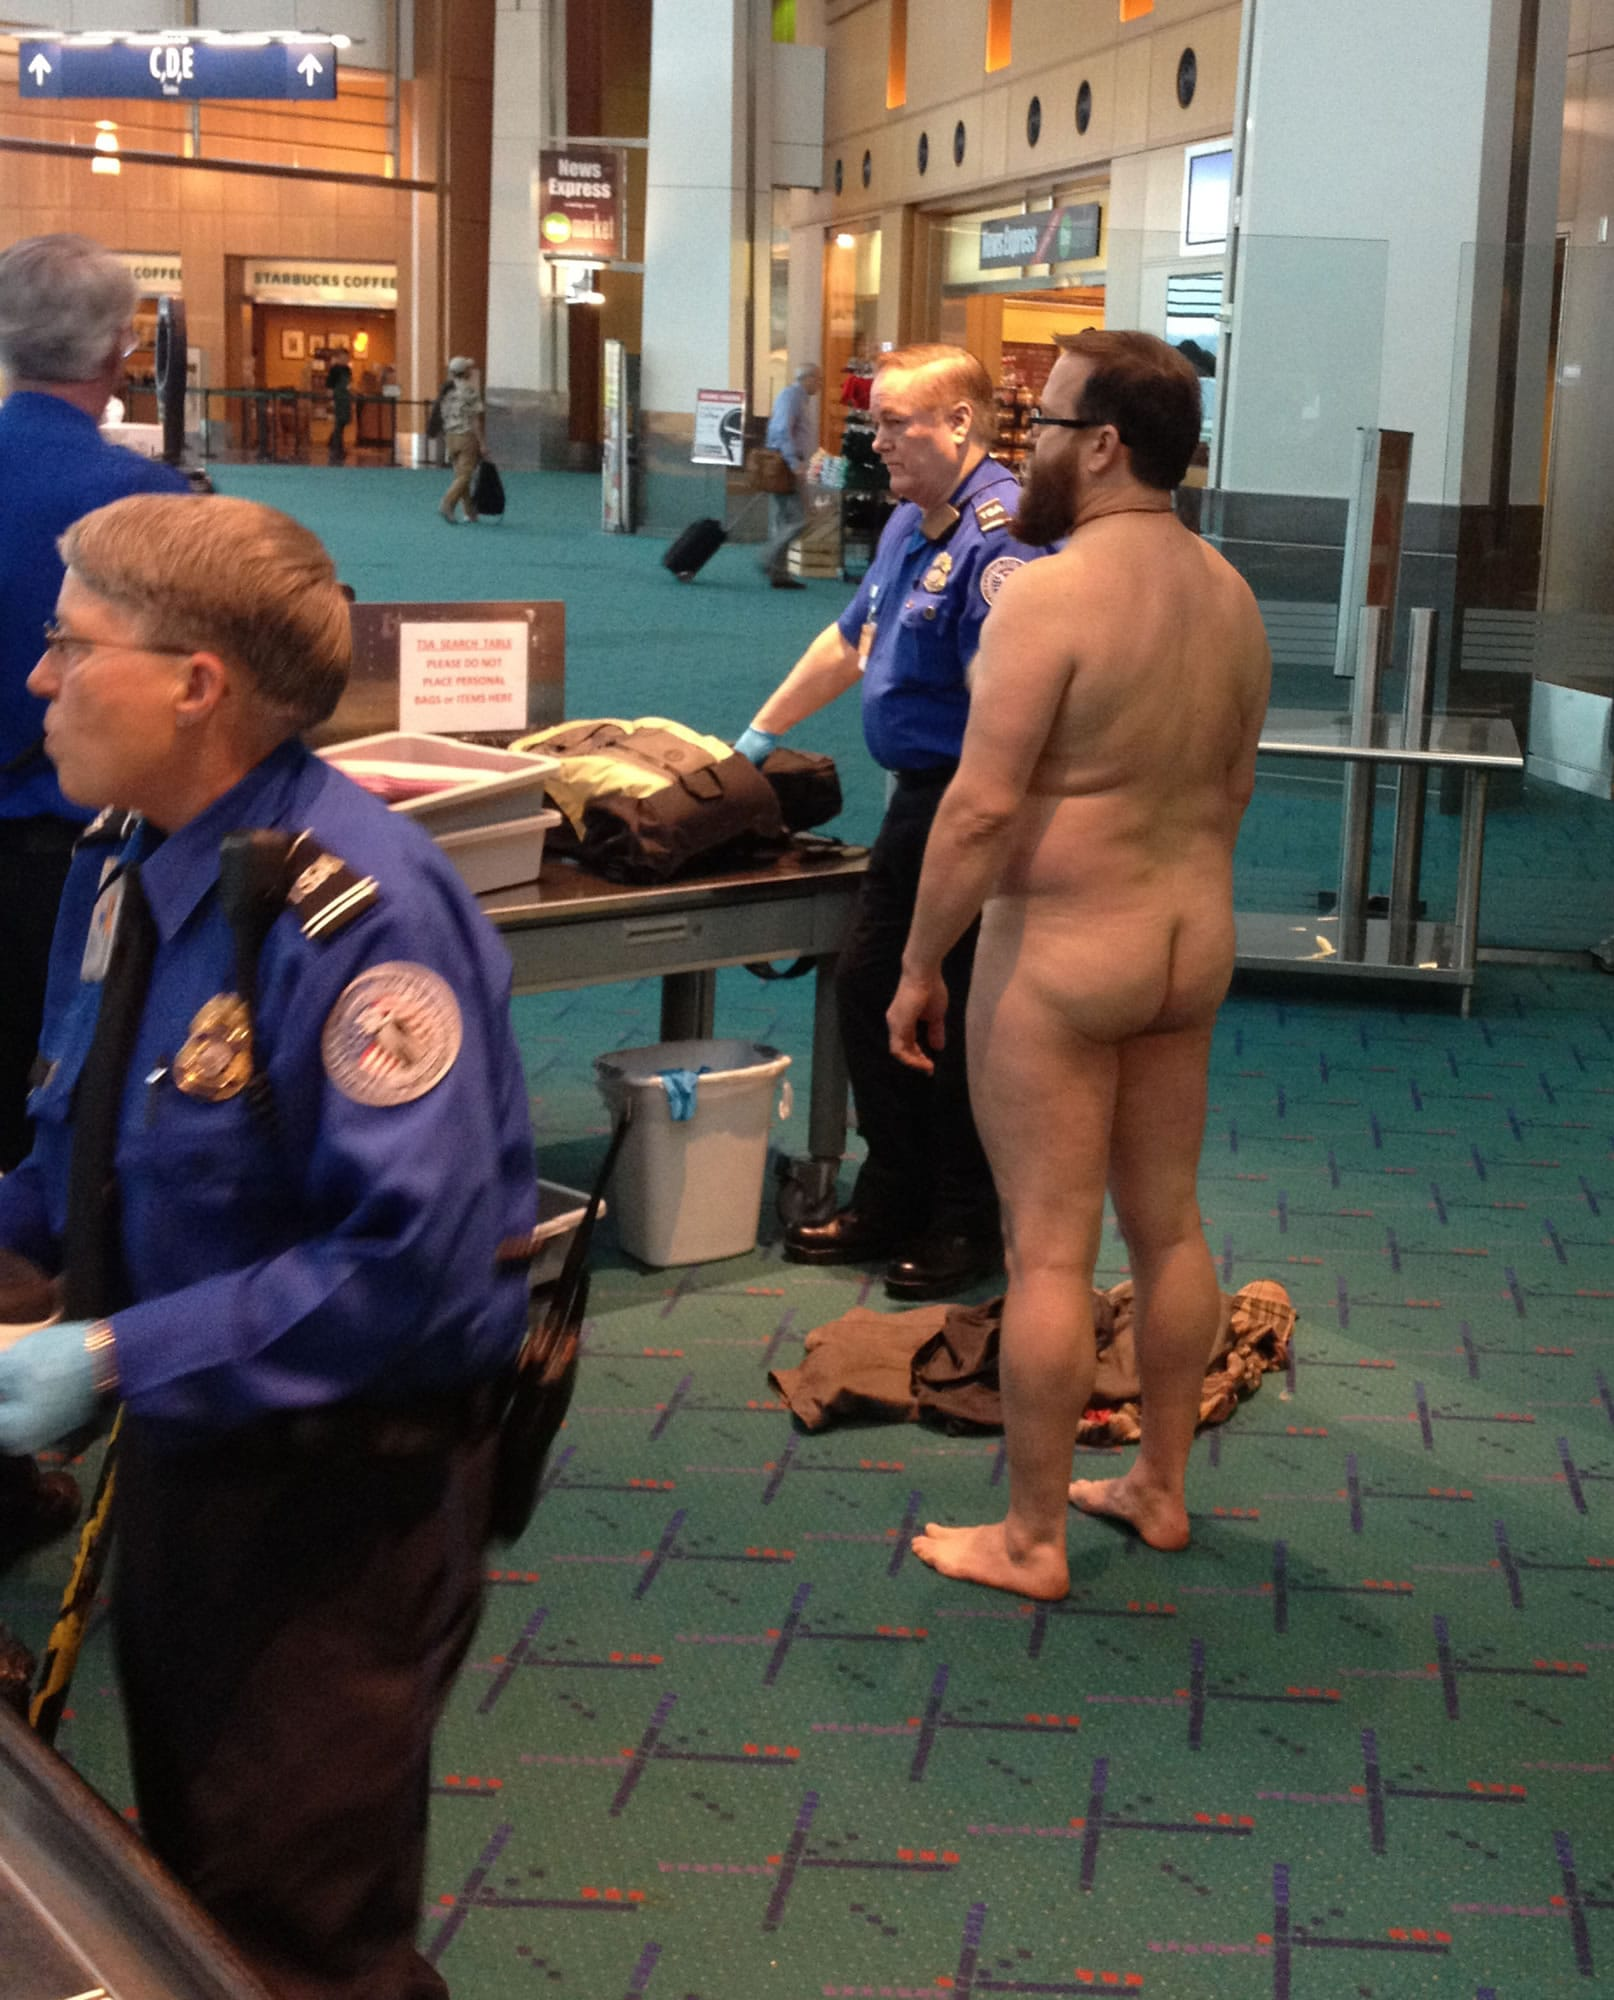 This photo taken at Portland International Airport in April shows John E. Brennan standing naked after he stripped down while going through a security screening area to protest against security procedures.